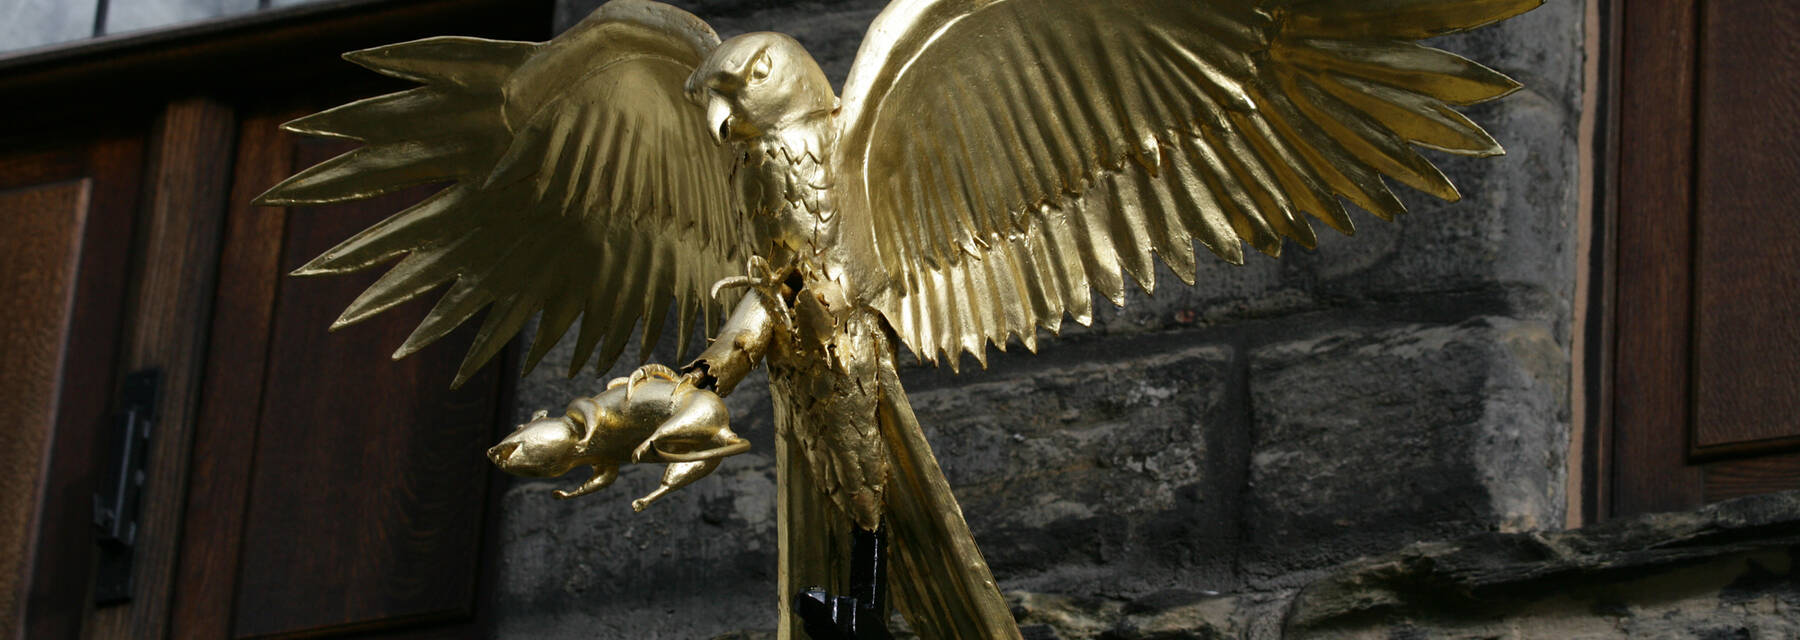 Gladstone's Land exterior wall close up of golden sculpture of a bird of prey clutching a rodent